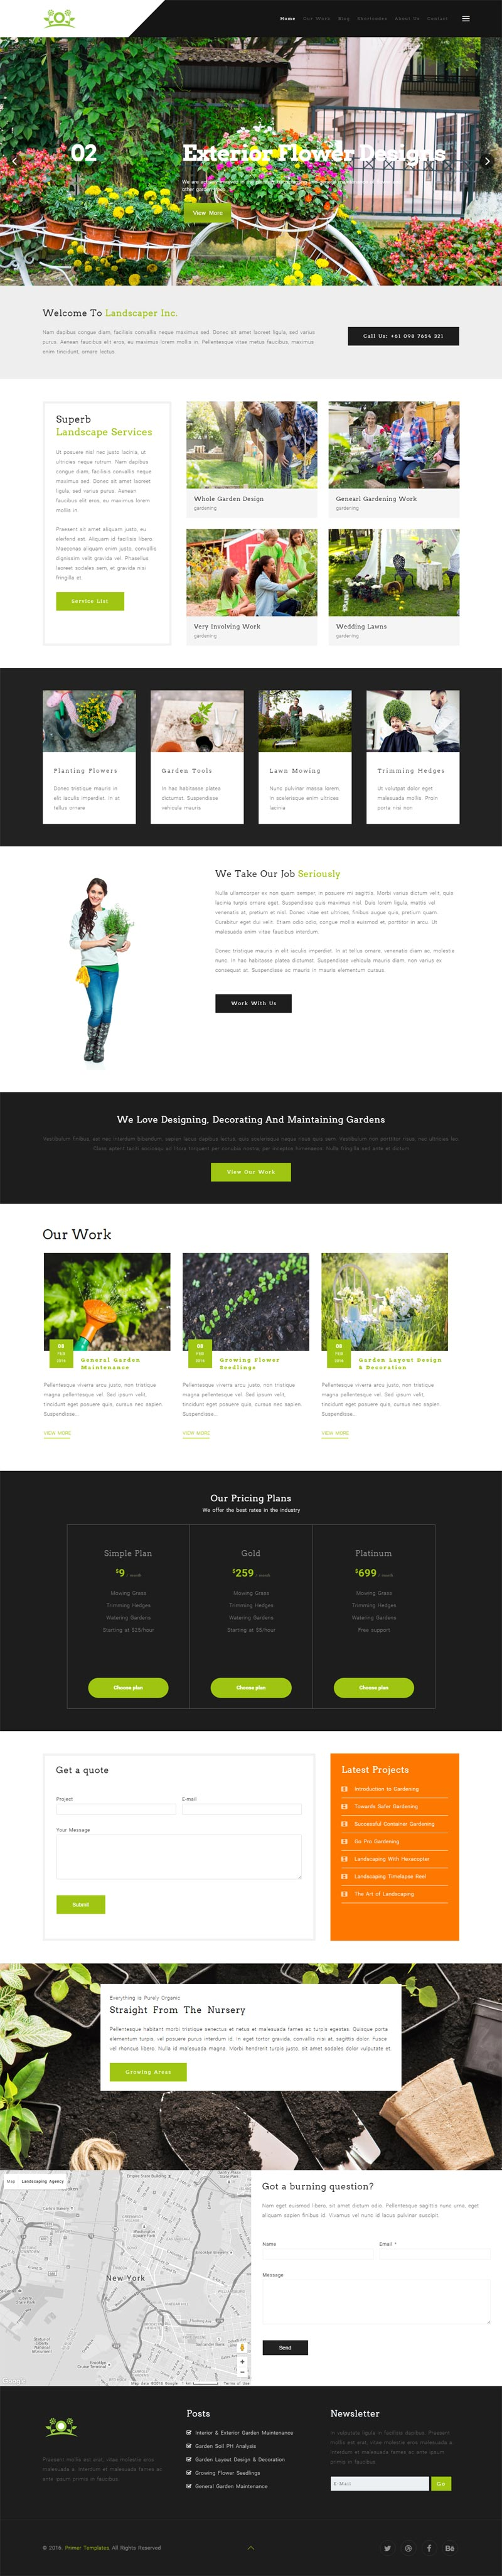 Main home page Joomla! template